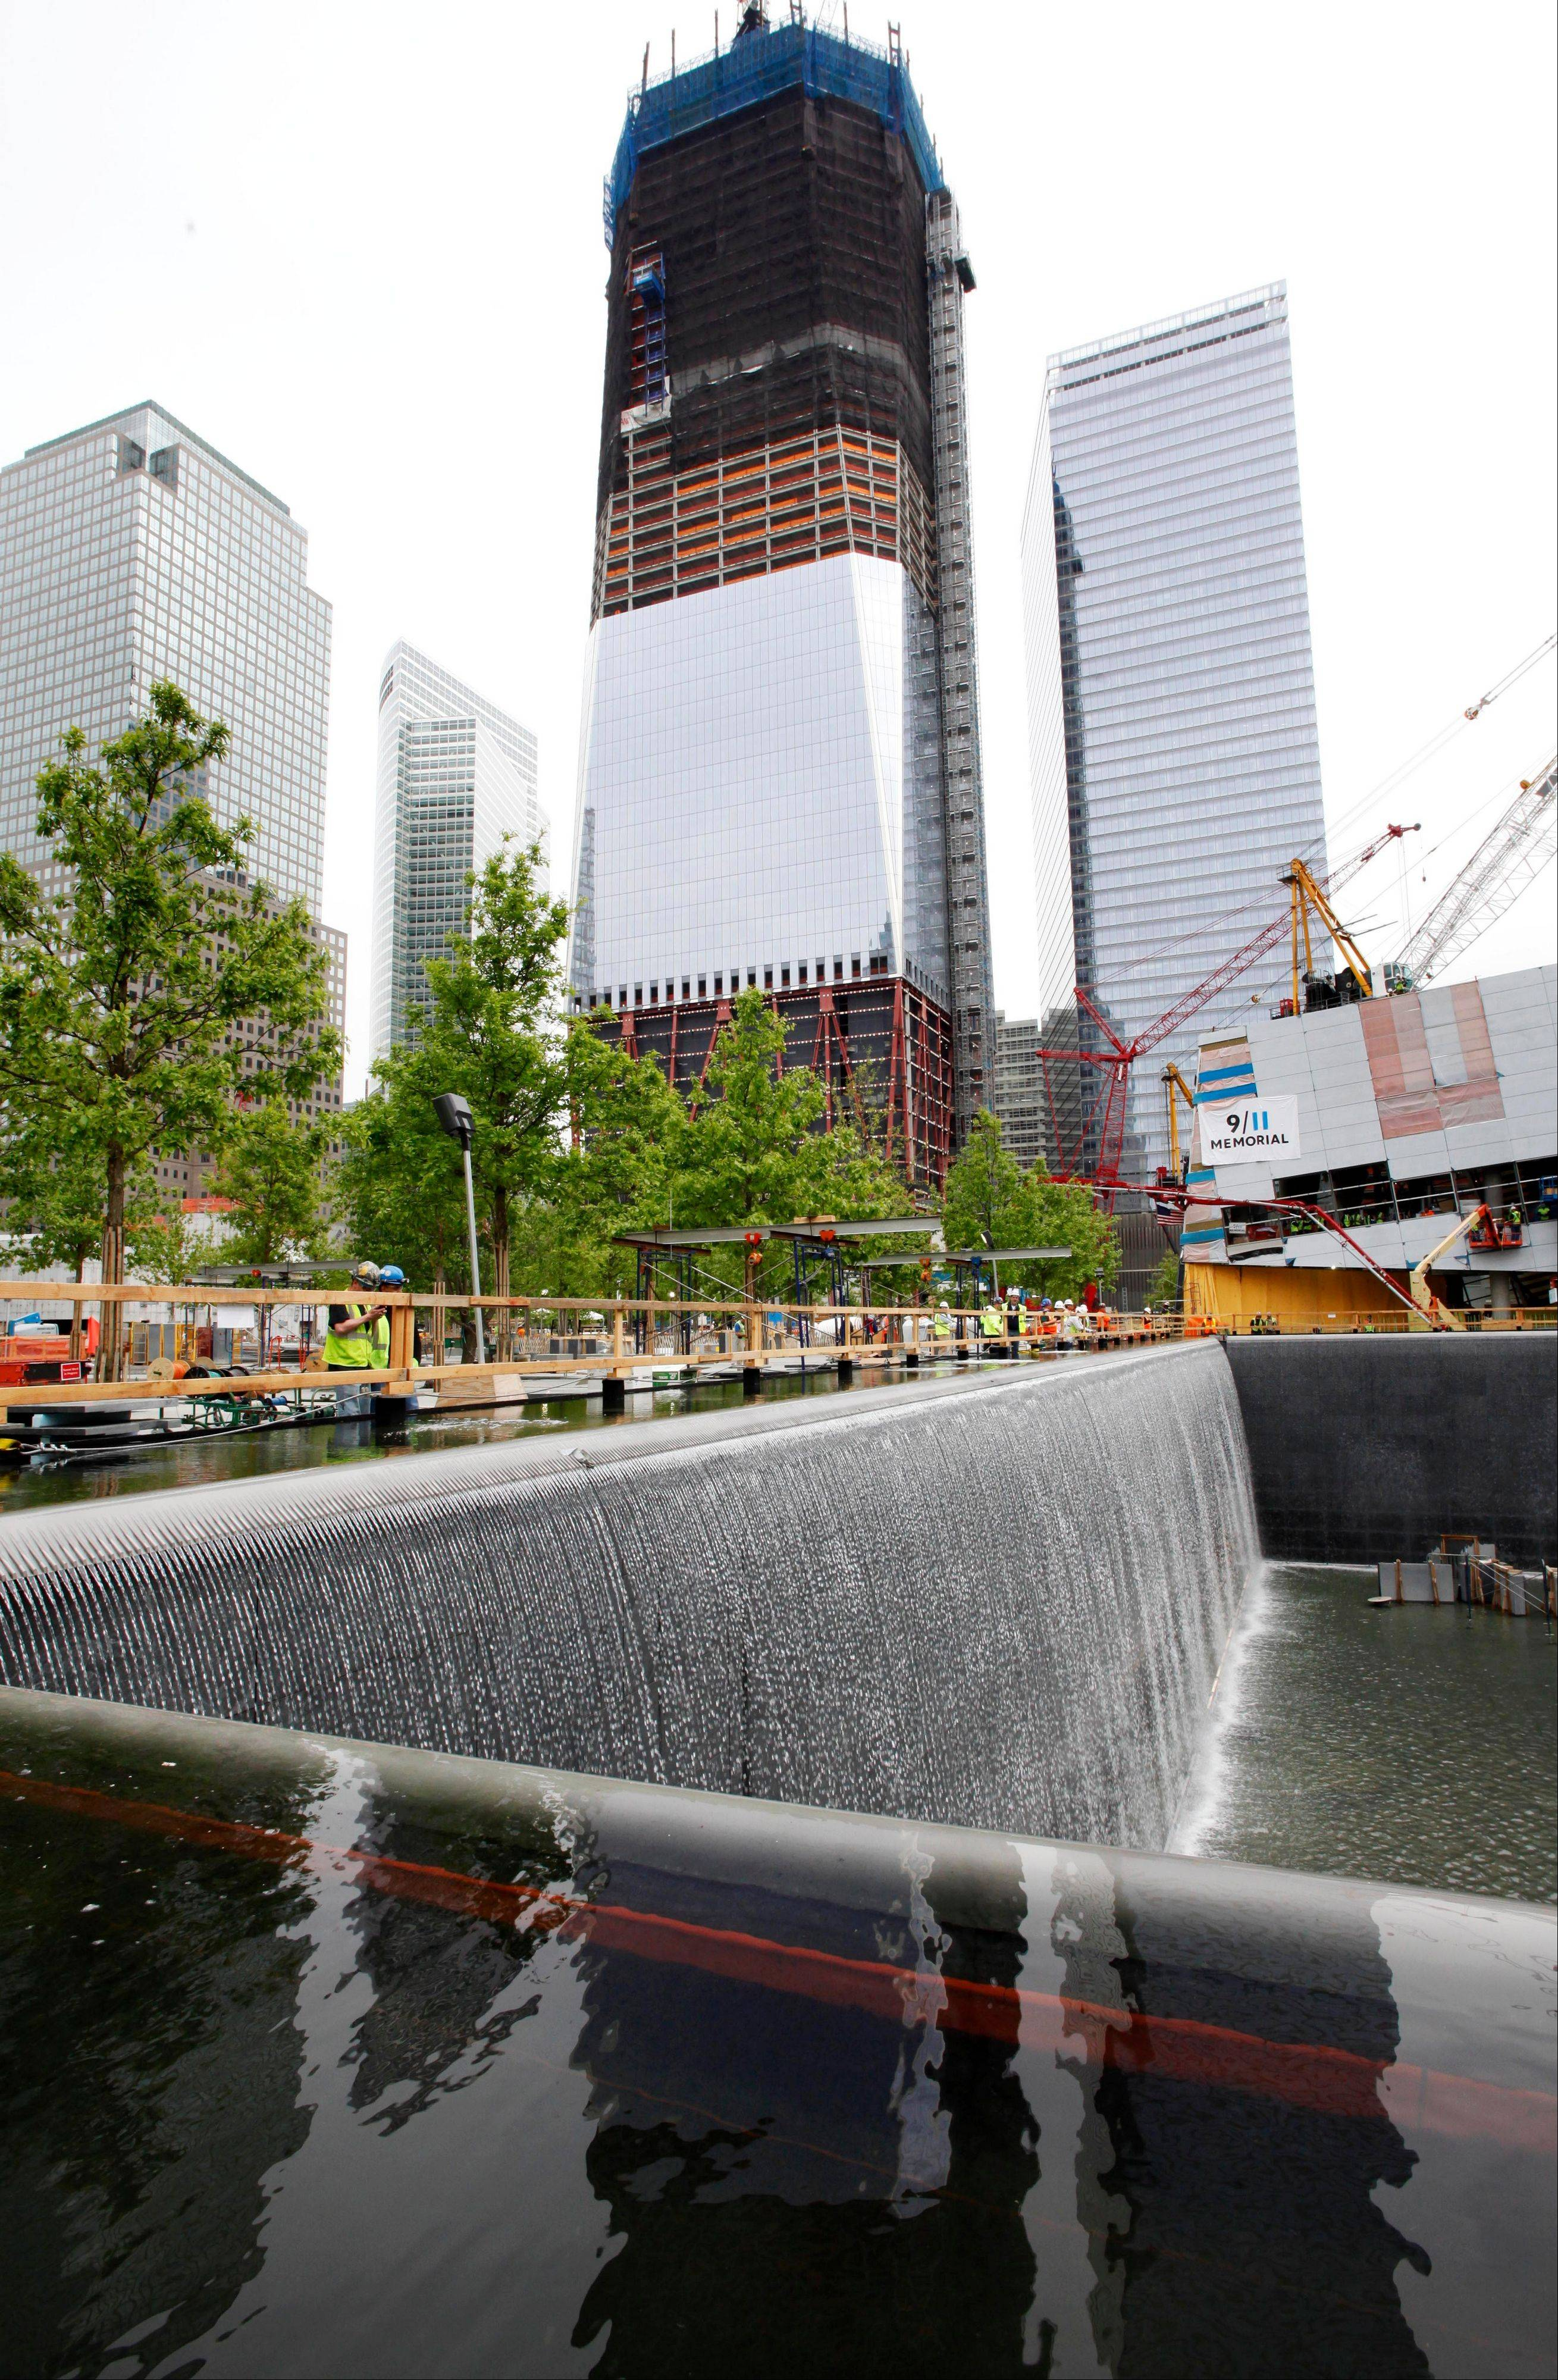 Waterfalls empty into a massive reflecting pool at the National September 11 Memorial.